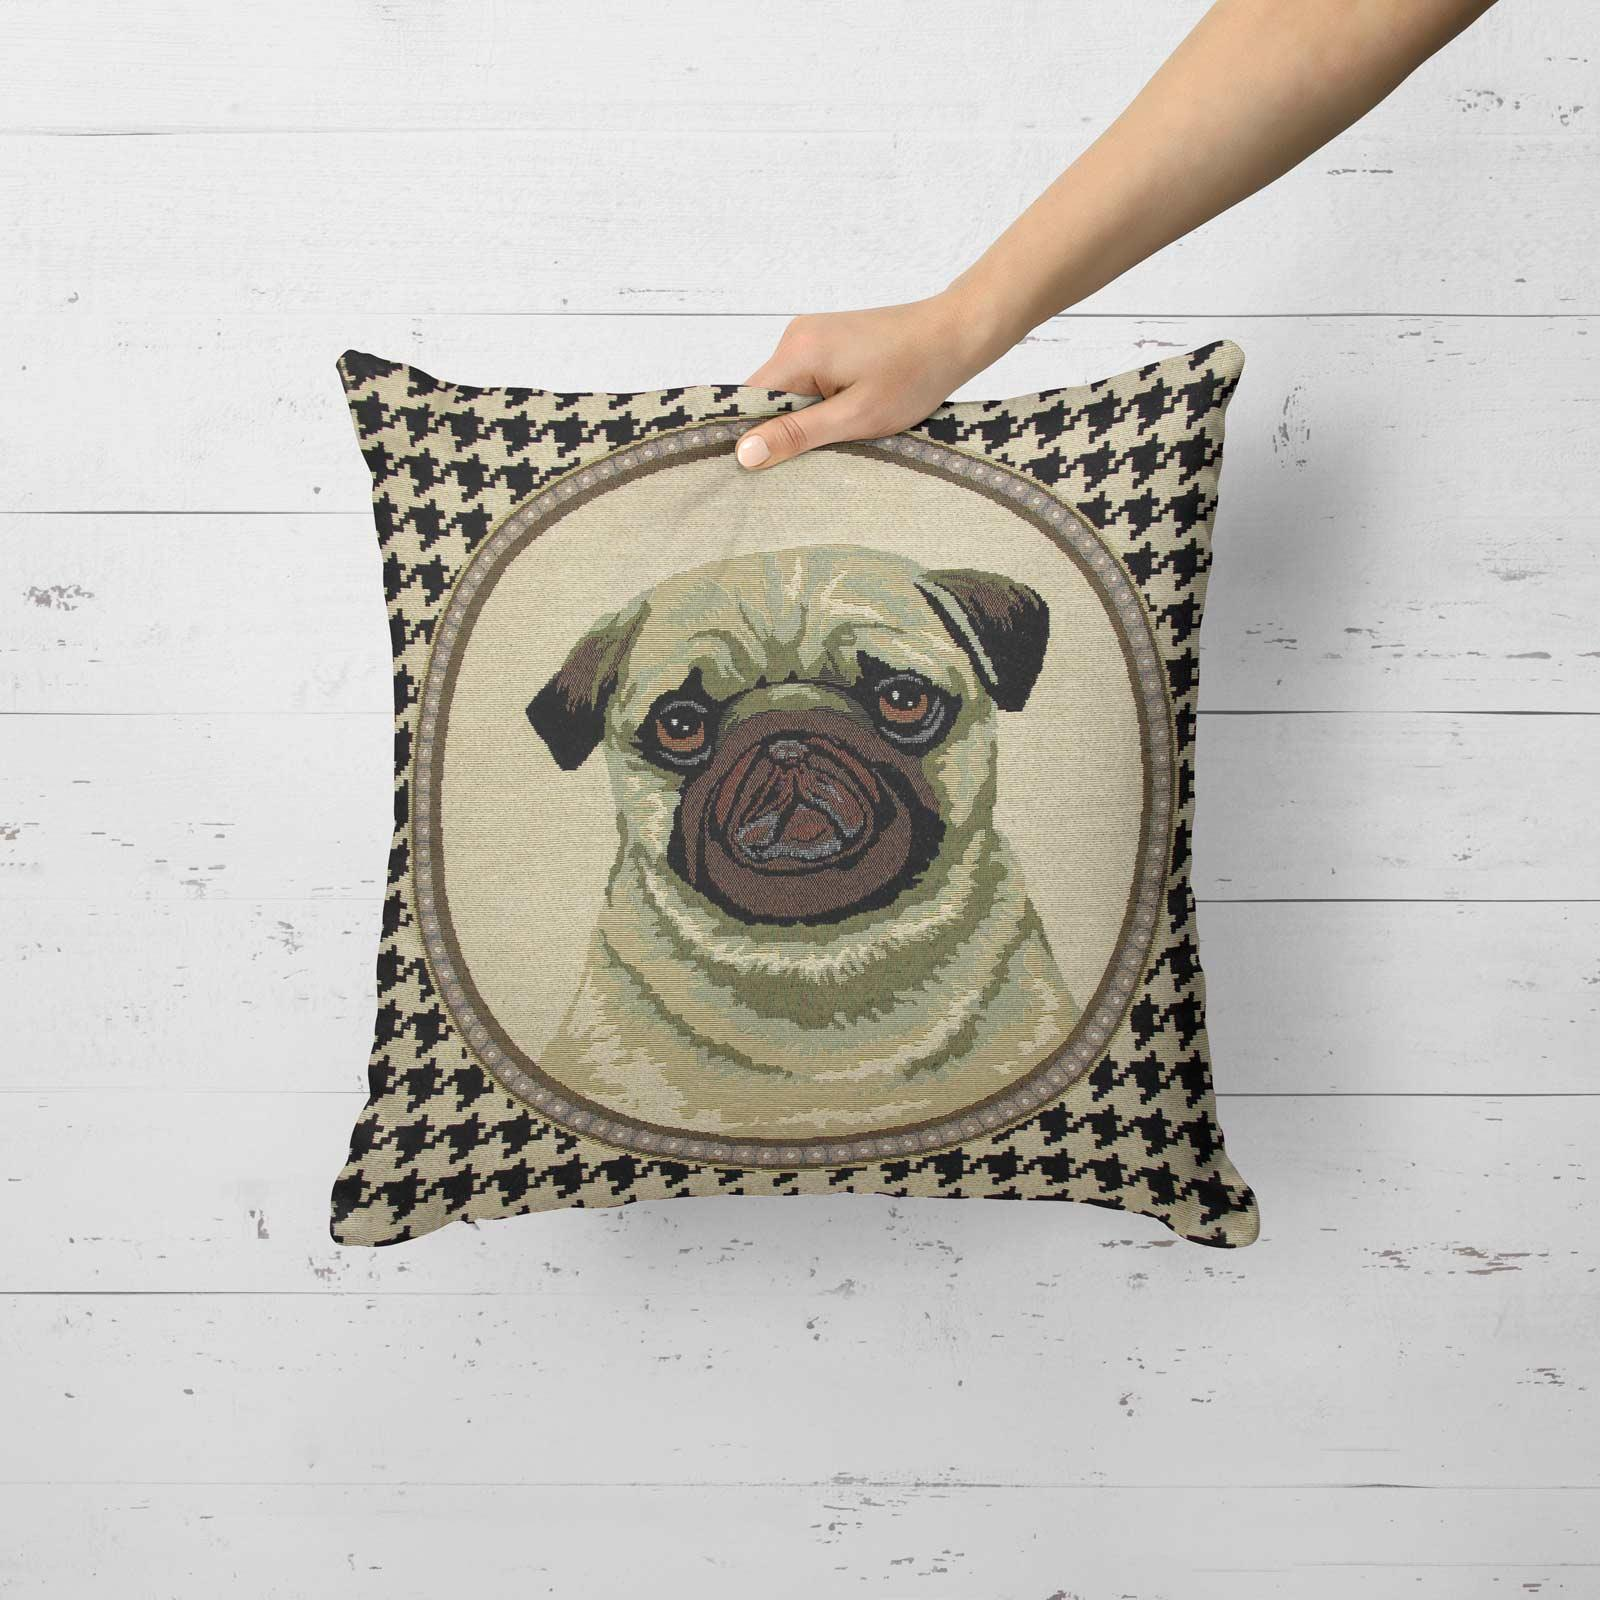 Tapestry-Cushion-Covers-Vintage-Pillow-Cover-Collection-18-034-45cm-Filled-Cushions thumbnail 131